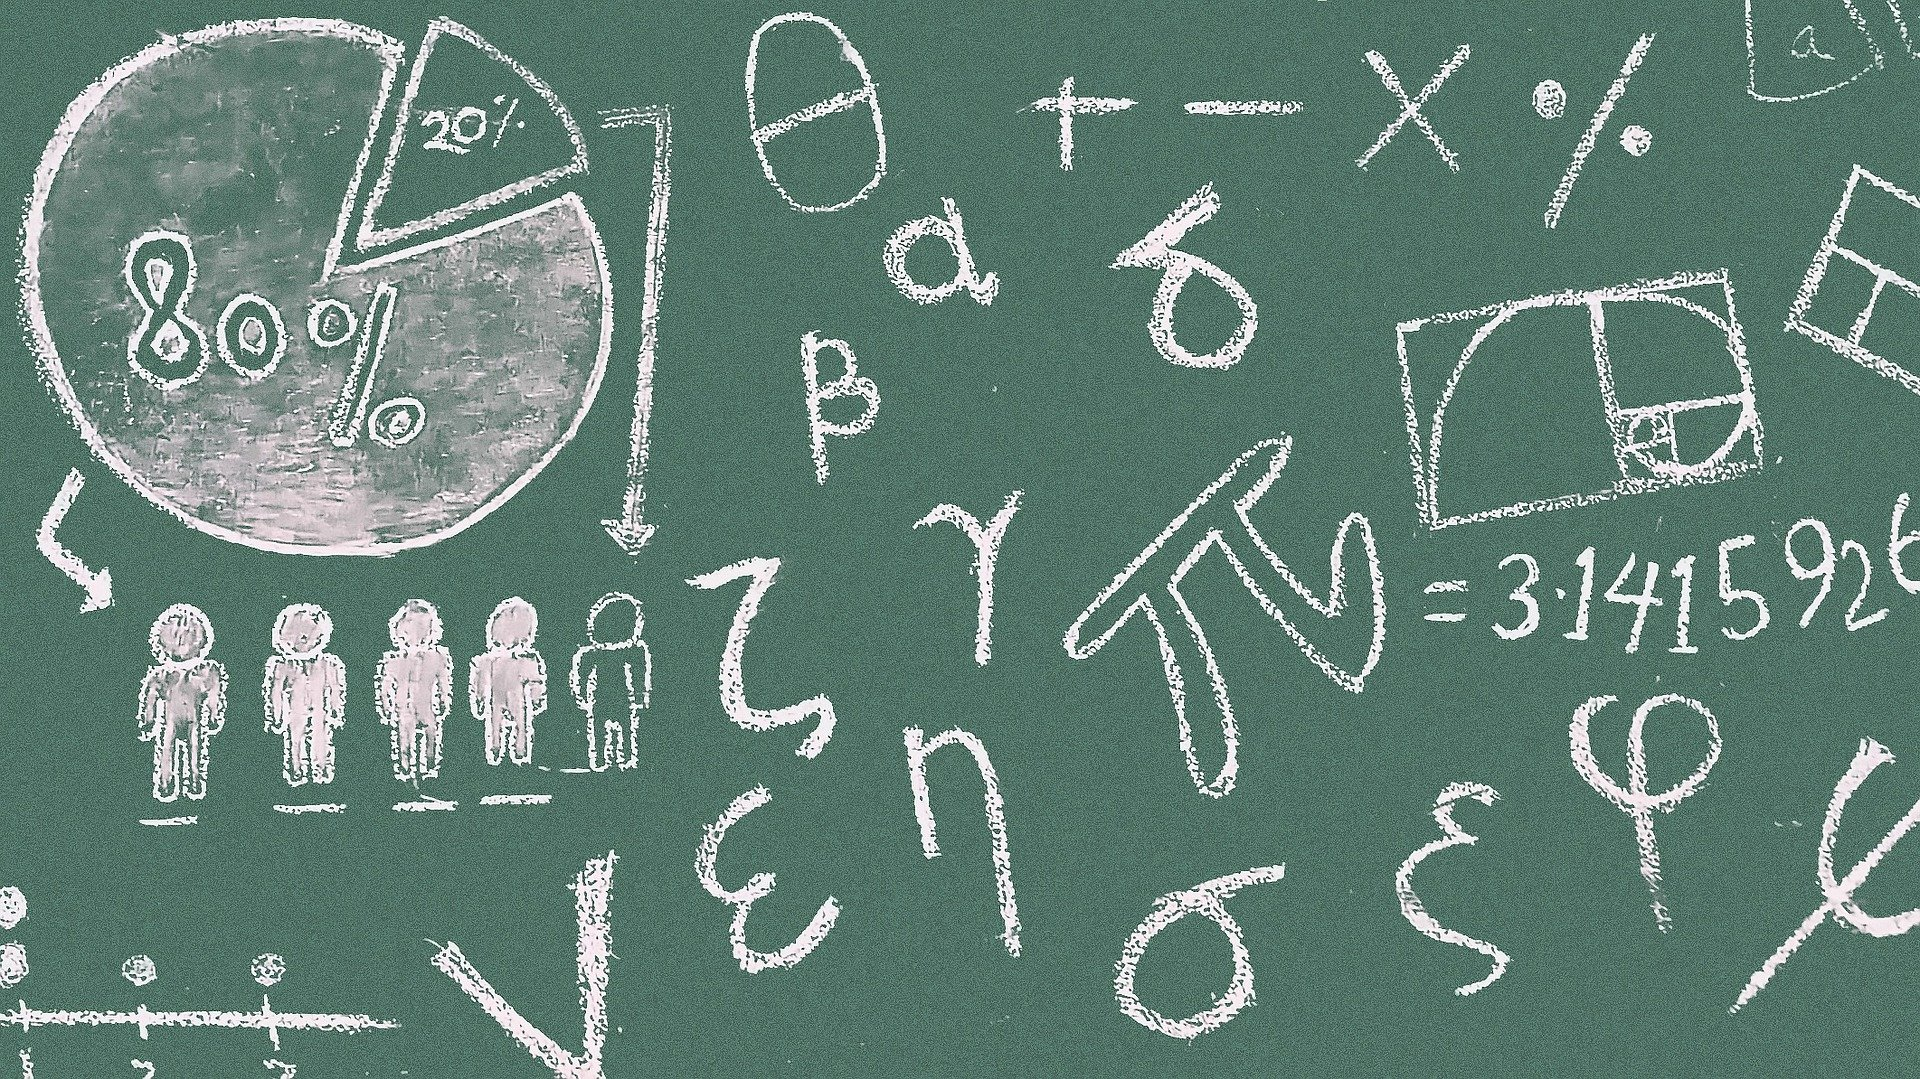 positive attitude toward math predicts math achievement in kids